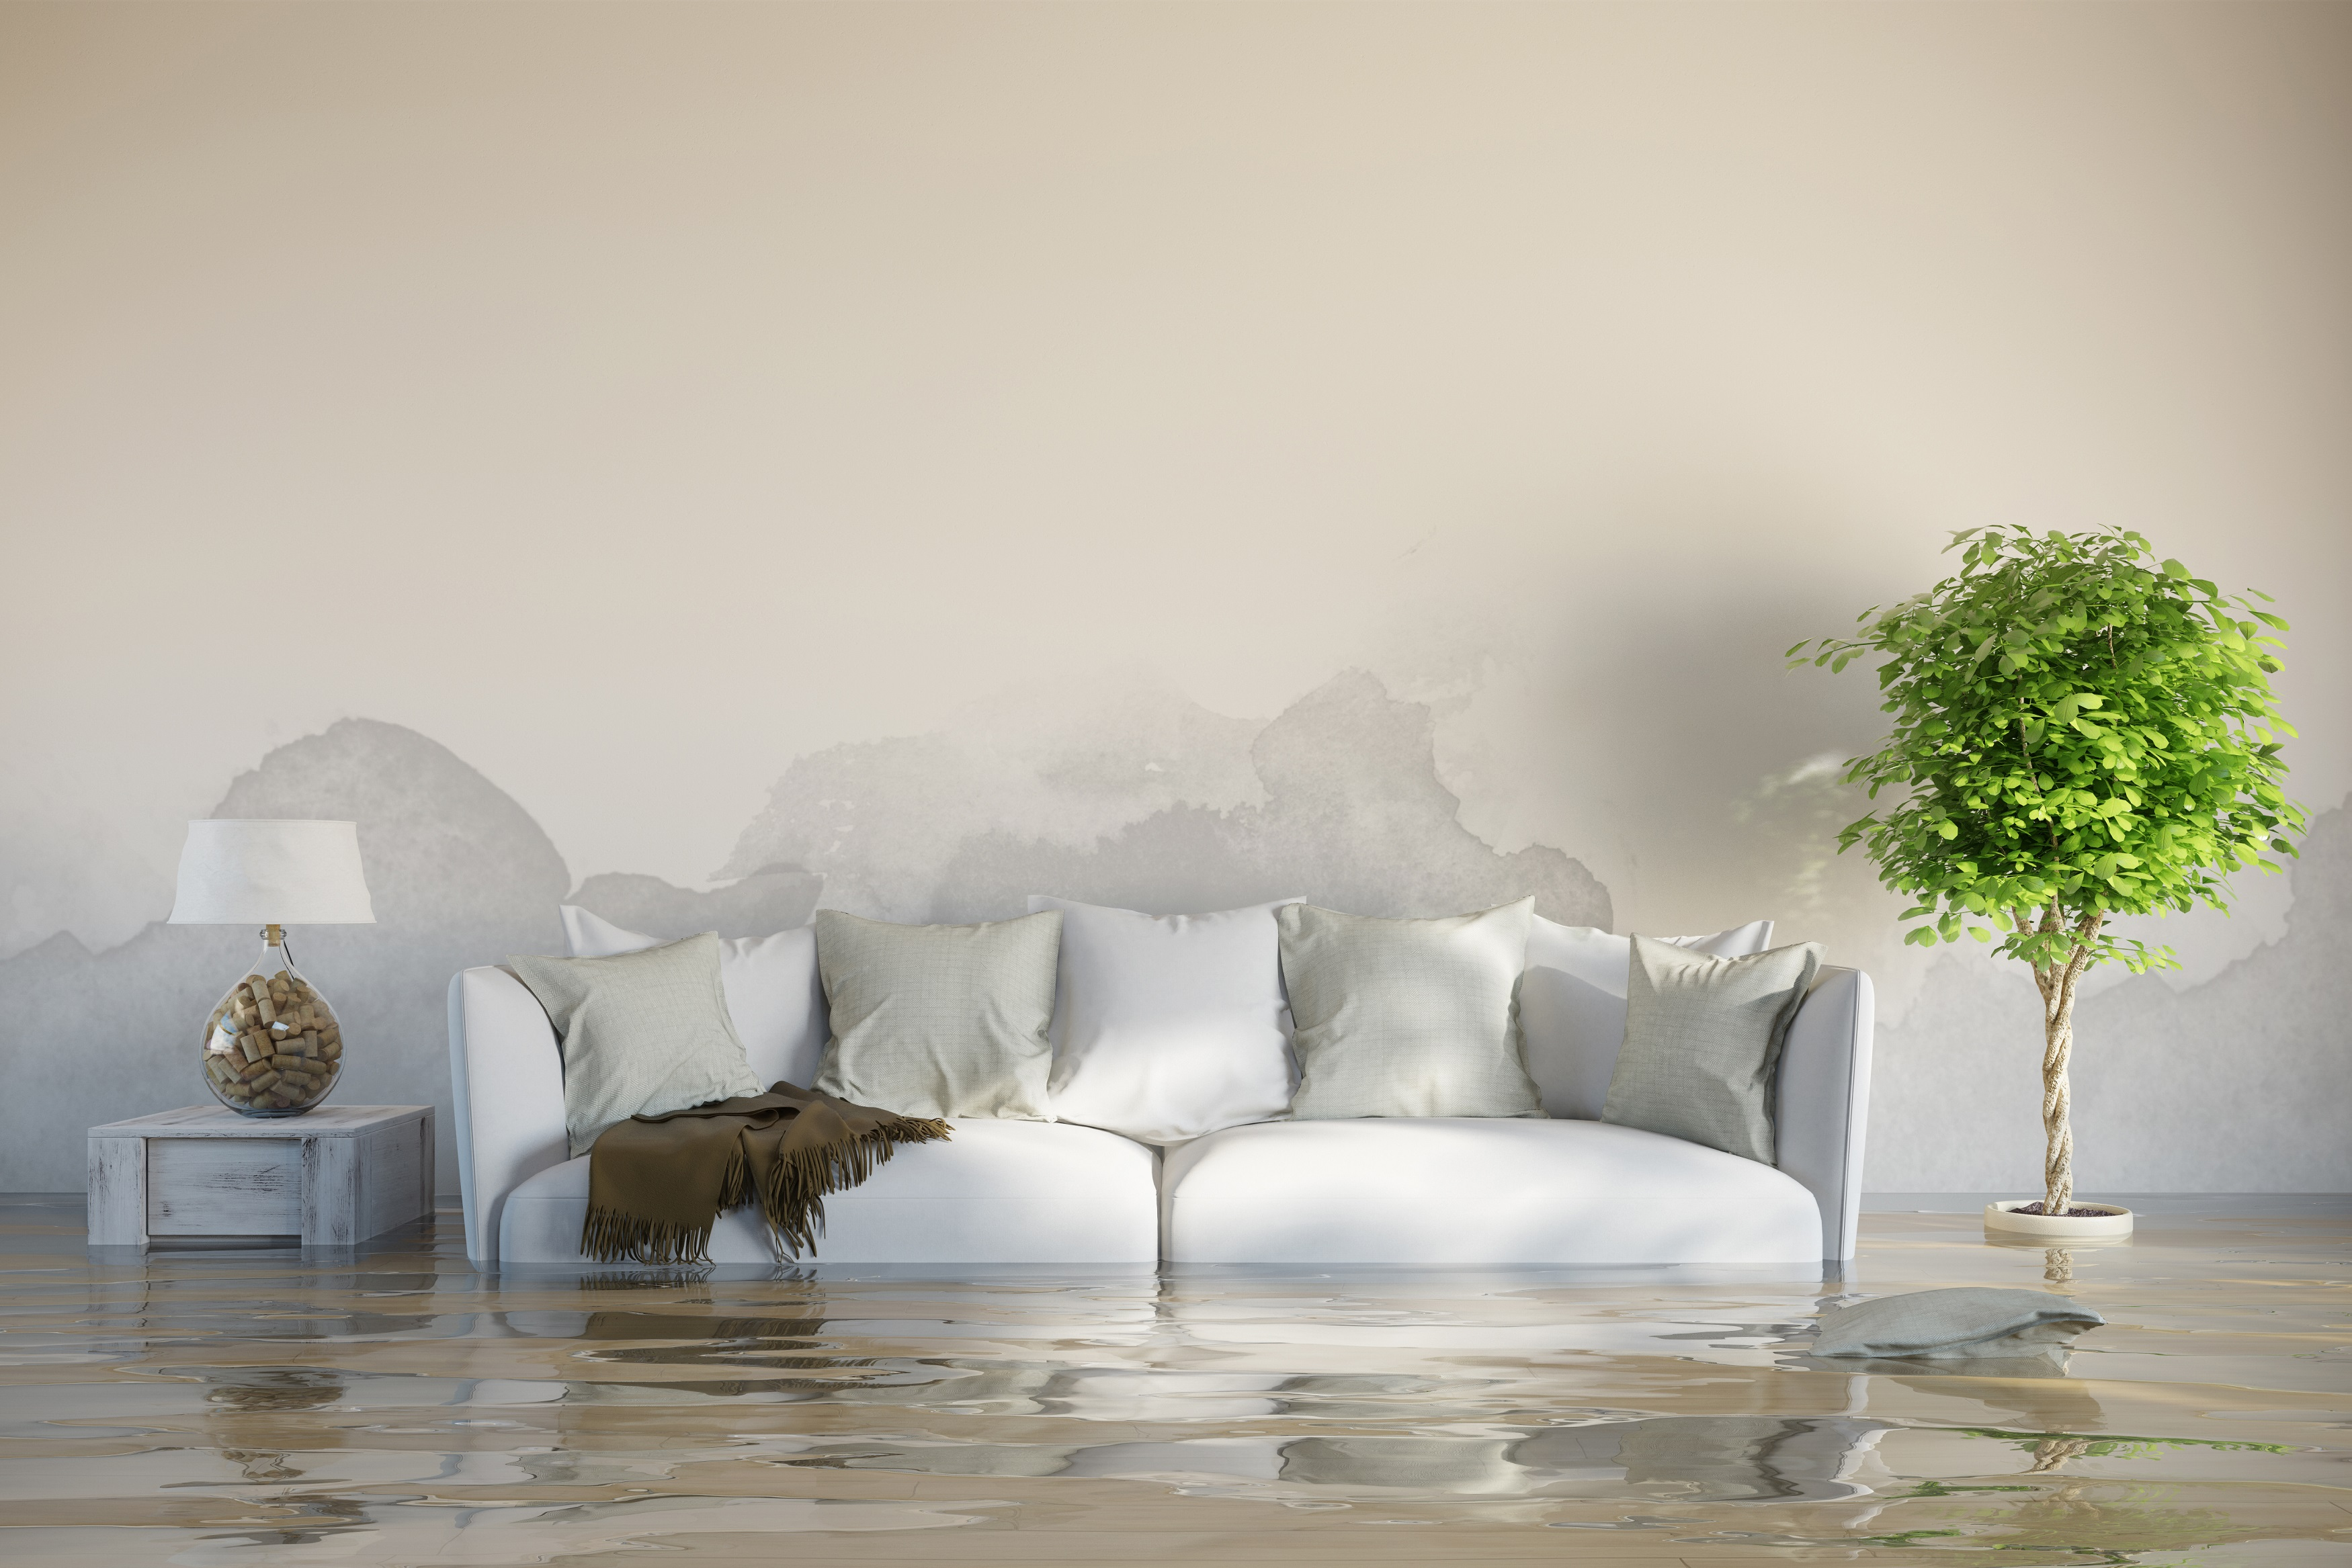 What You Need to Know About Dealing with Water Damage